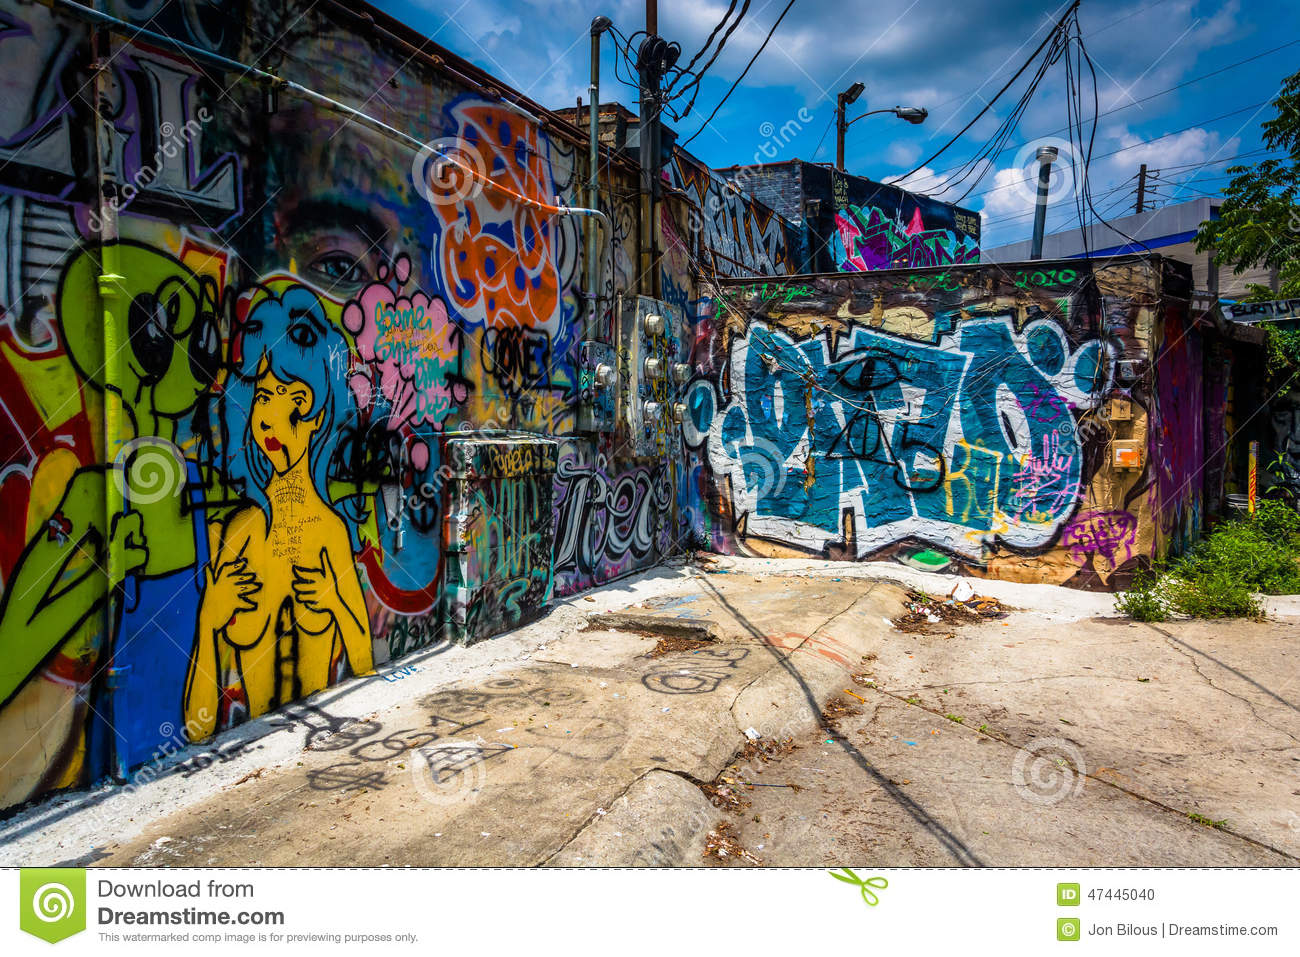 Graffiti wall atlanta - Graffiti On Walls In An Alley In Little Five Points Atlanta Ge Stock Photo